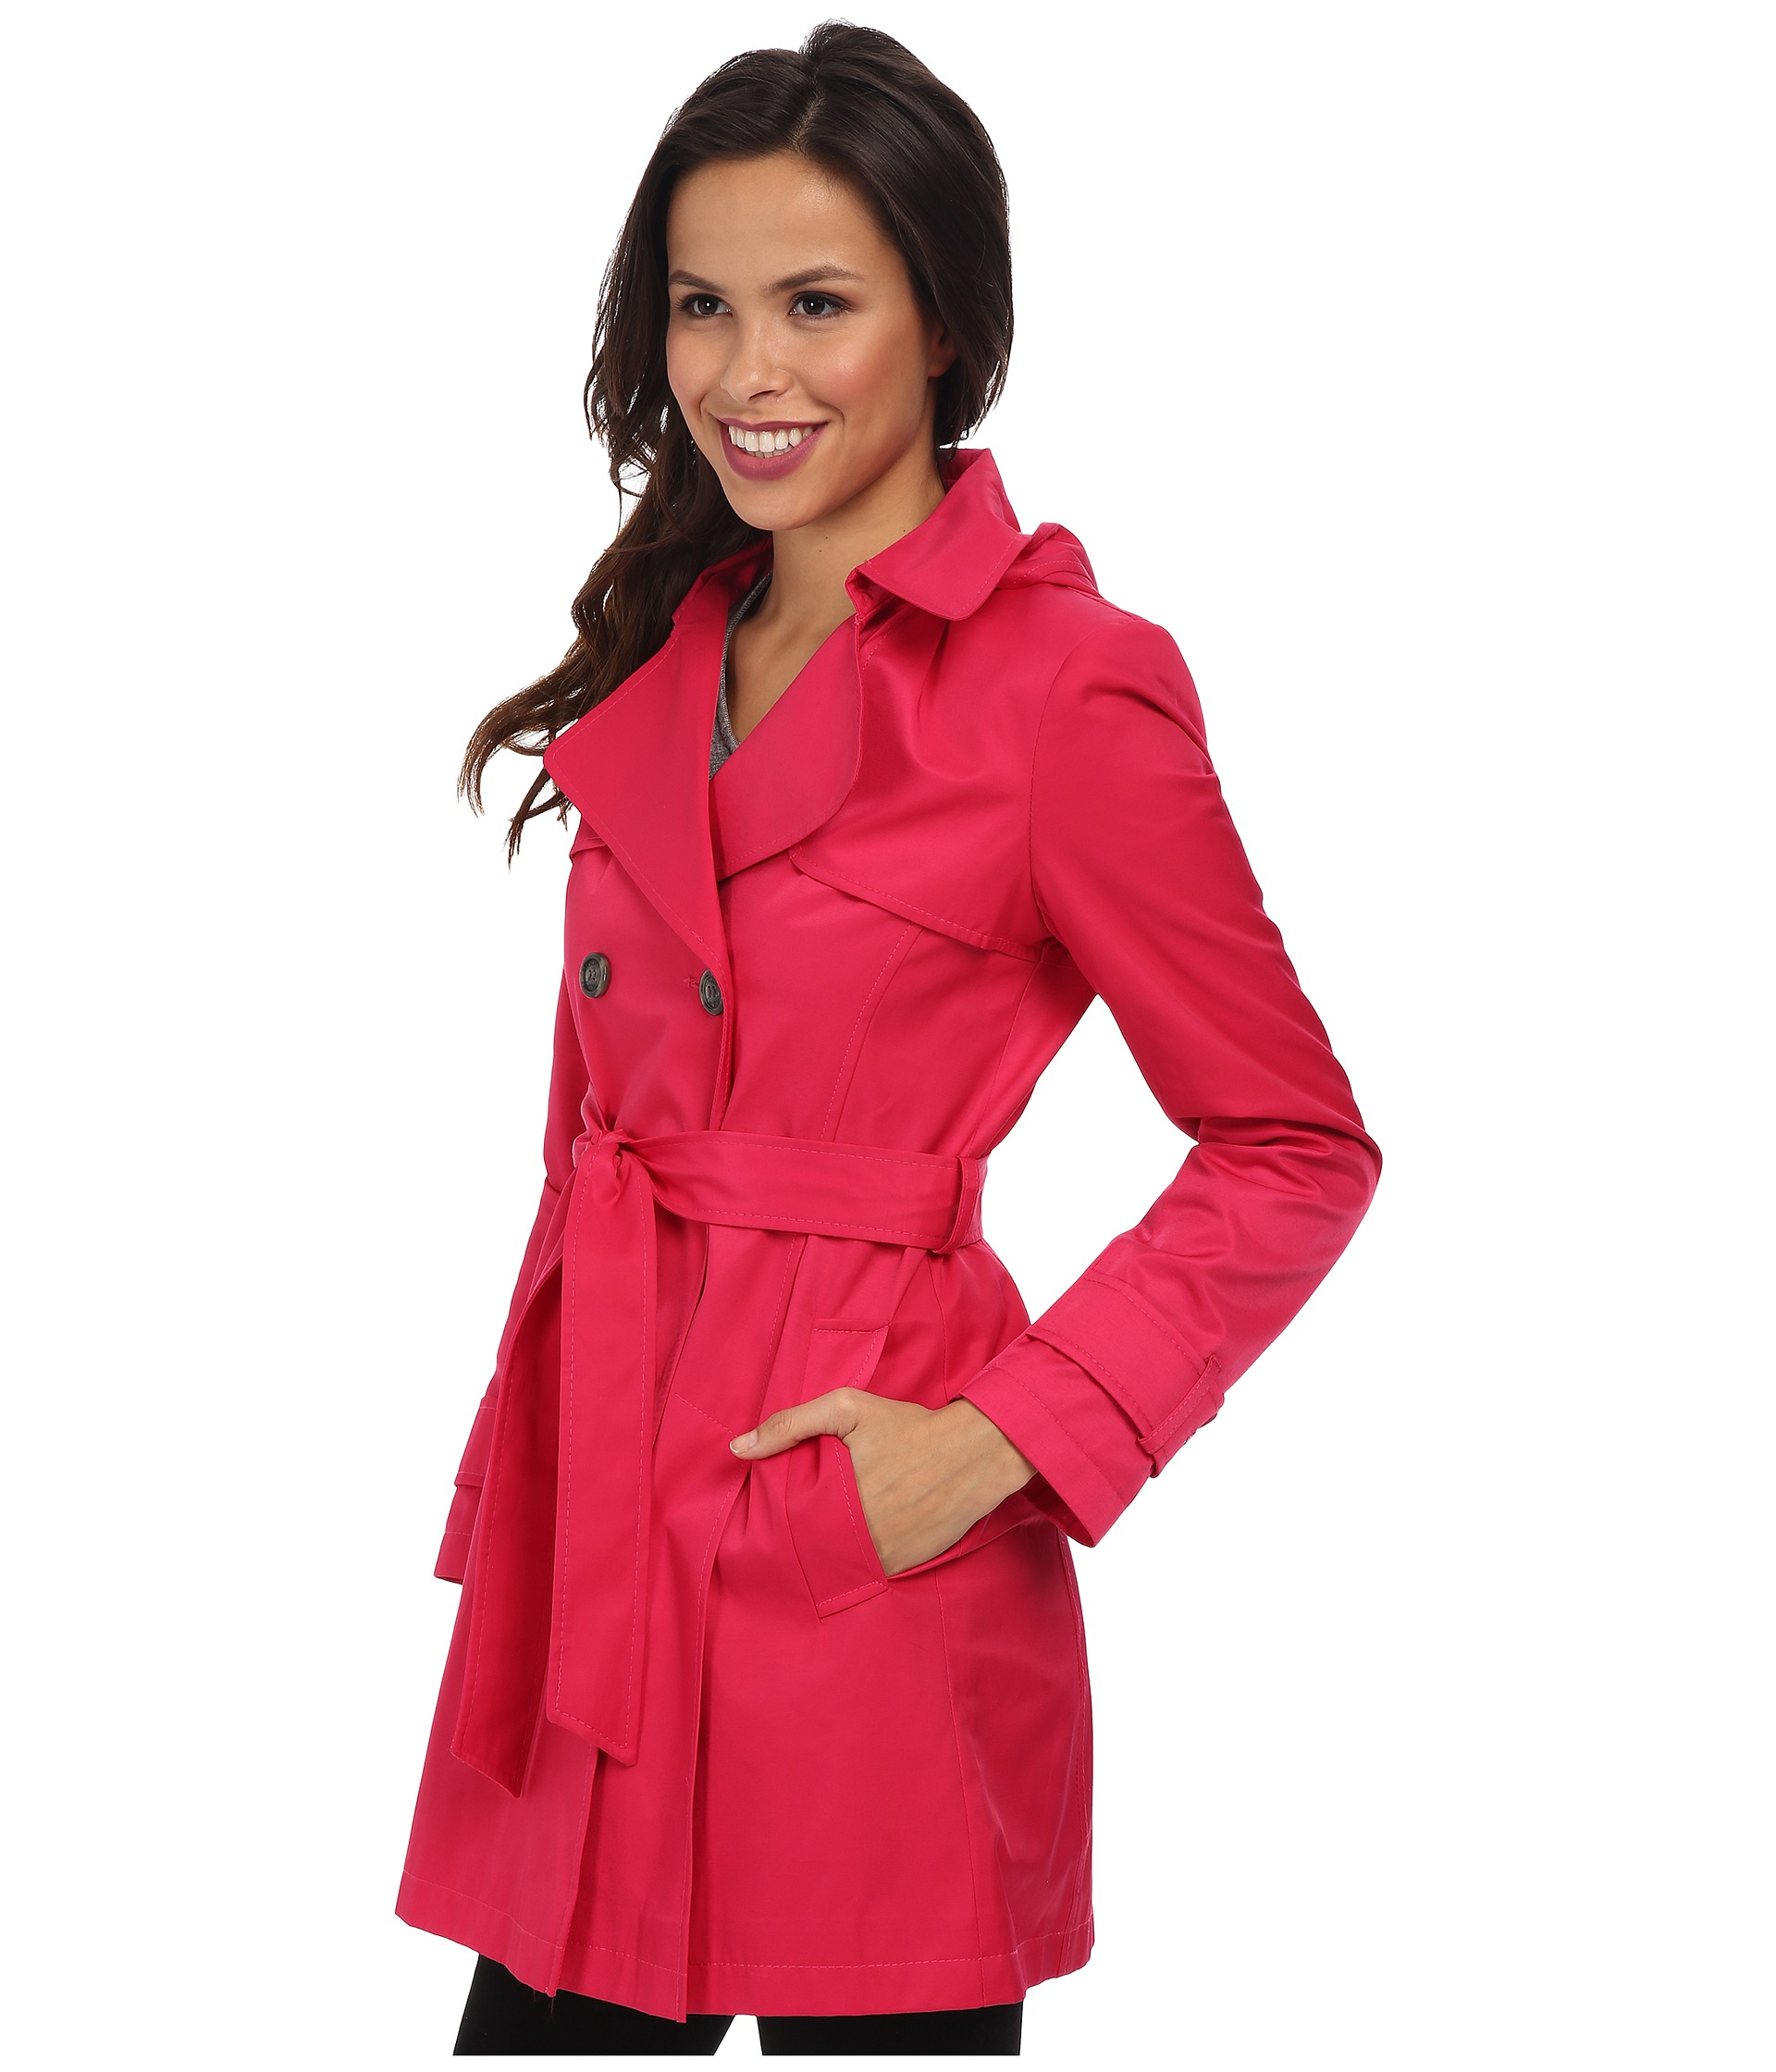 Dkny Double-Breasted Skirted Trench Coat in Red   Lyst